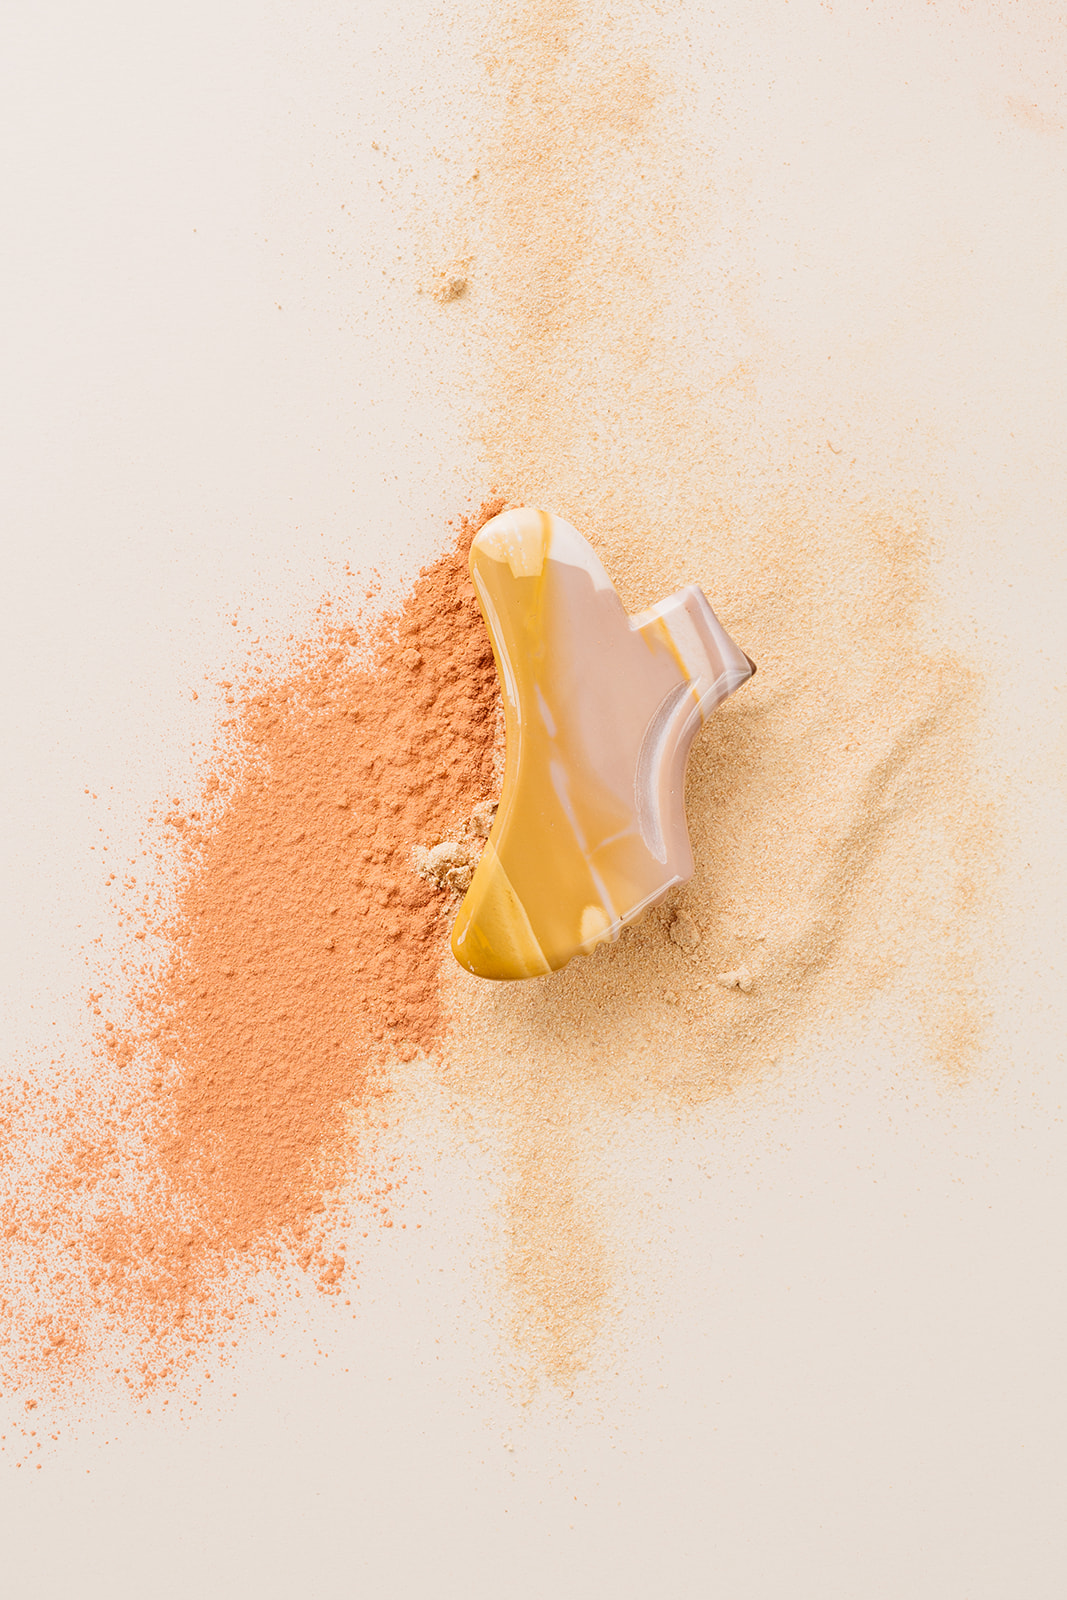 Skin care product with two tone beige background. Product photography taken in Montreal.